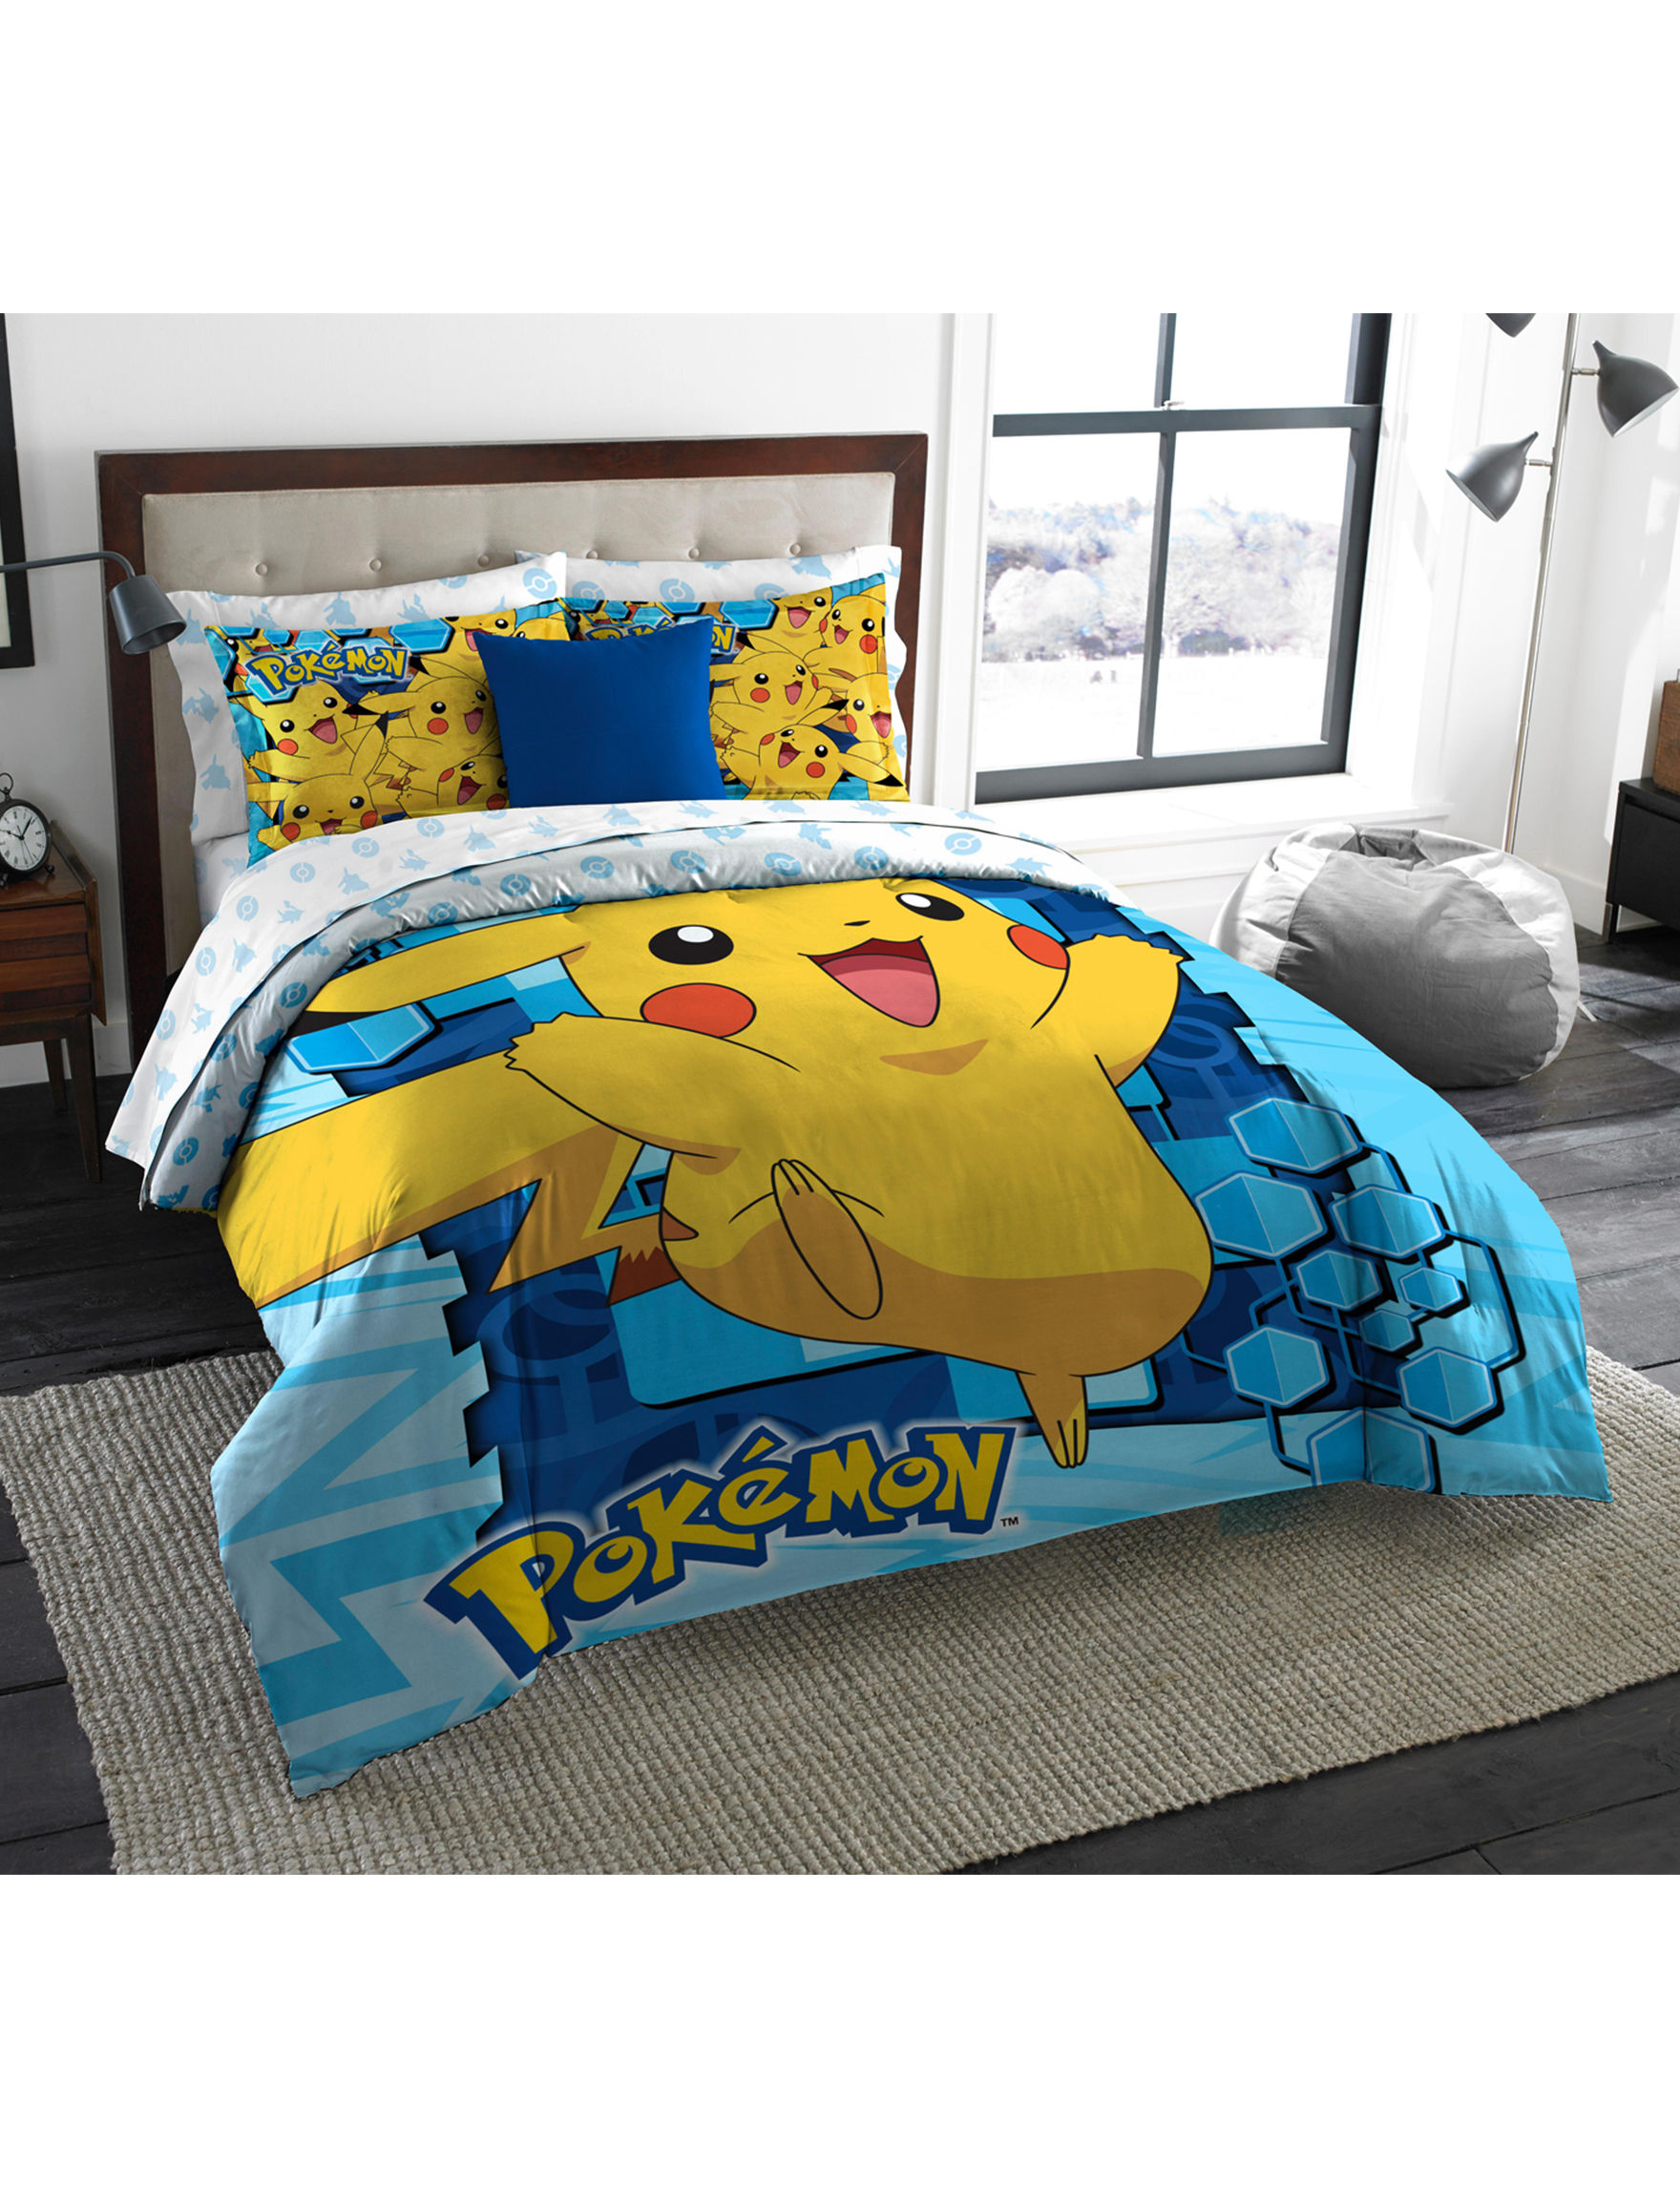 "Pokeman Big Pika Licensed Bedding, Twin/Full Comforter (72""x 86"") & 2 Shams (20""x 30"") Set  by The Northwest Company"